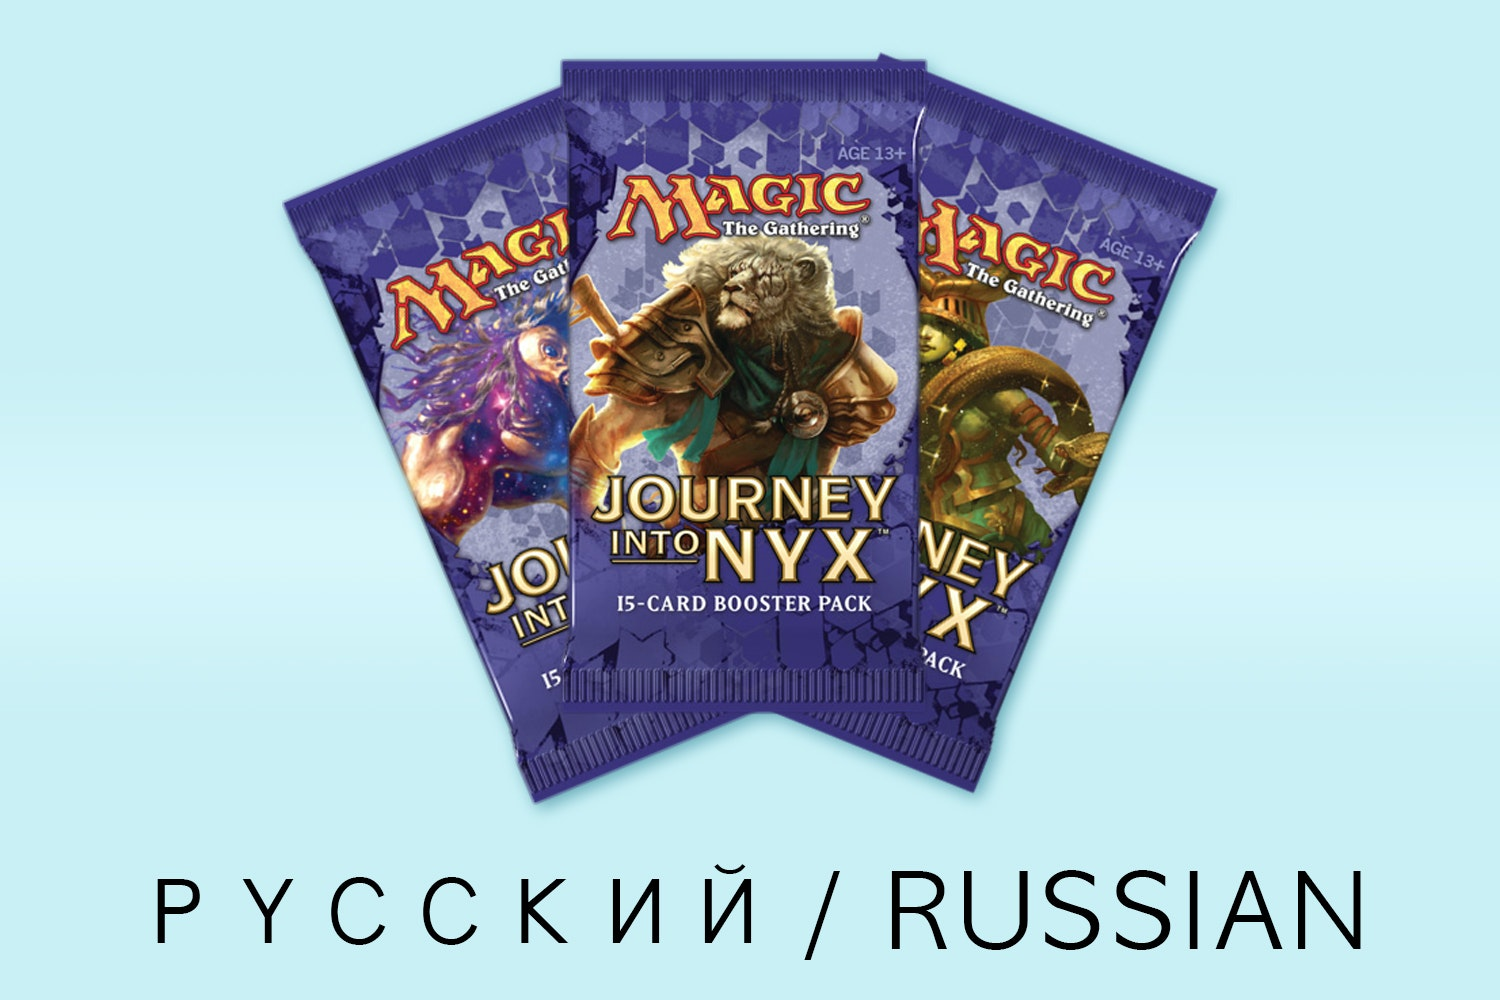 Journey into Nyx in Russian